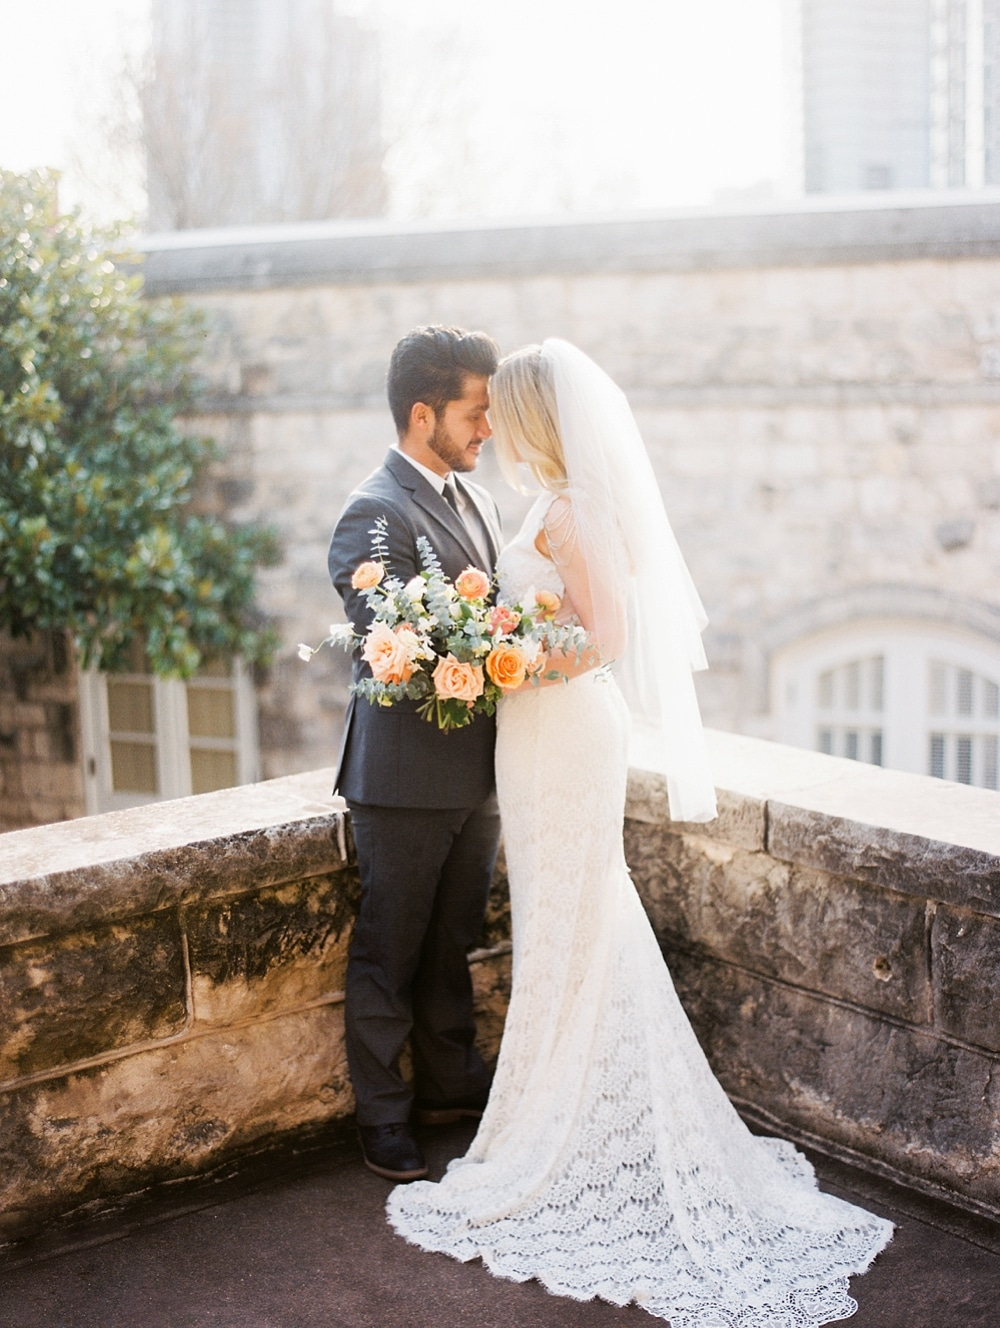 Kristin-La-Voie-Photography-Chateau-Bellevue-Austin-Wedding-Photographer-9